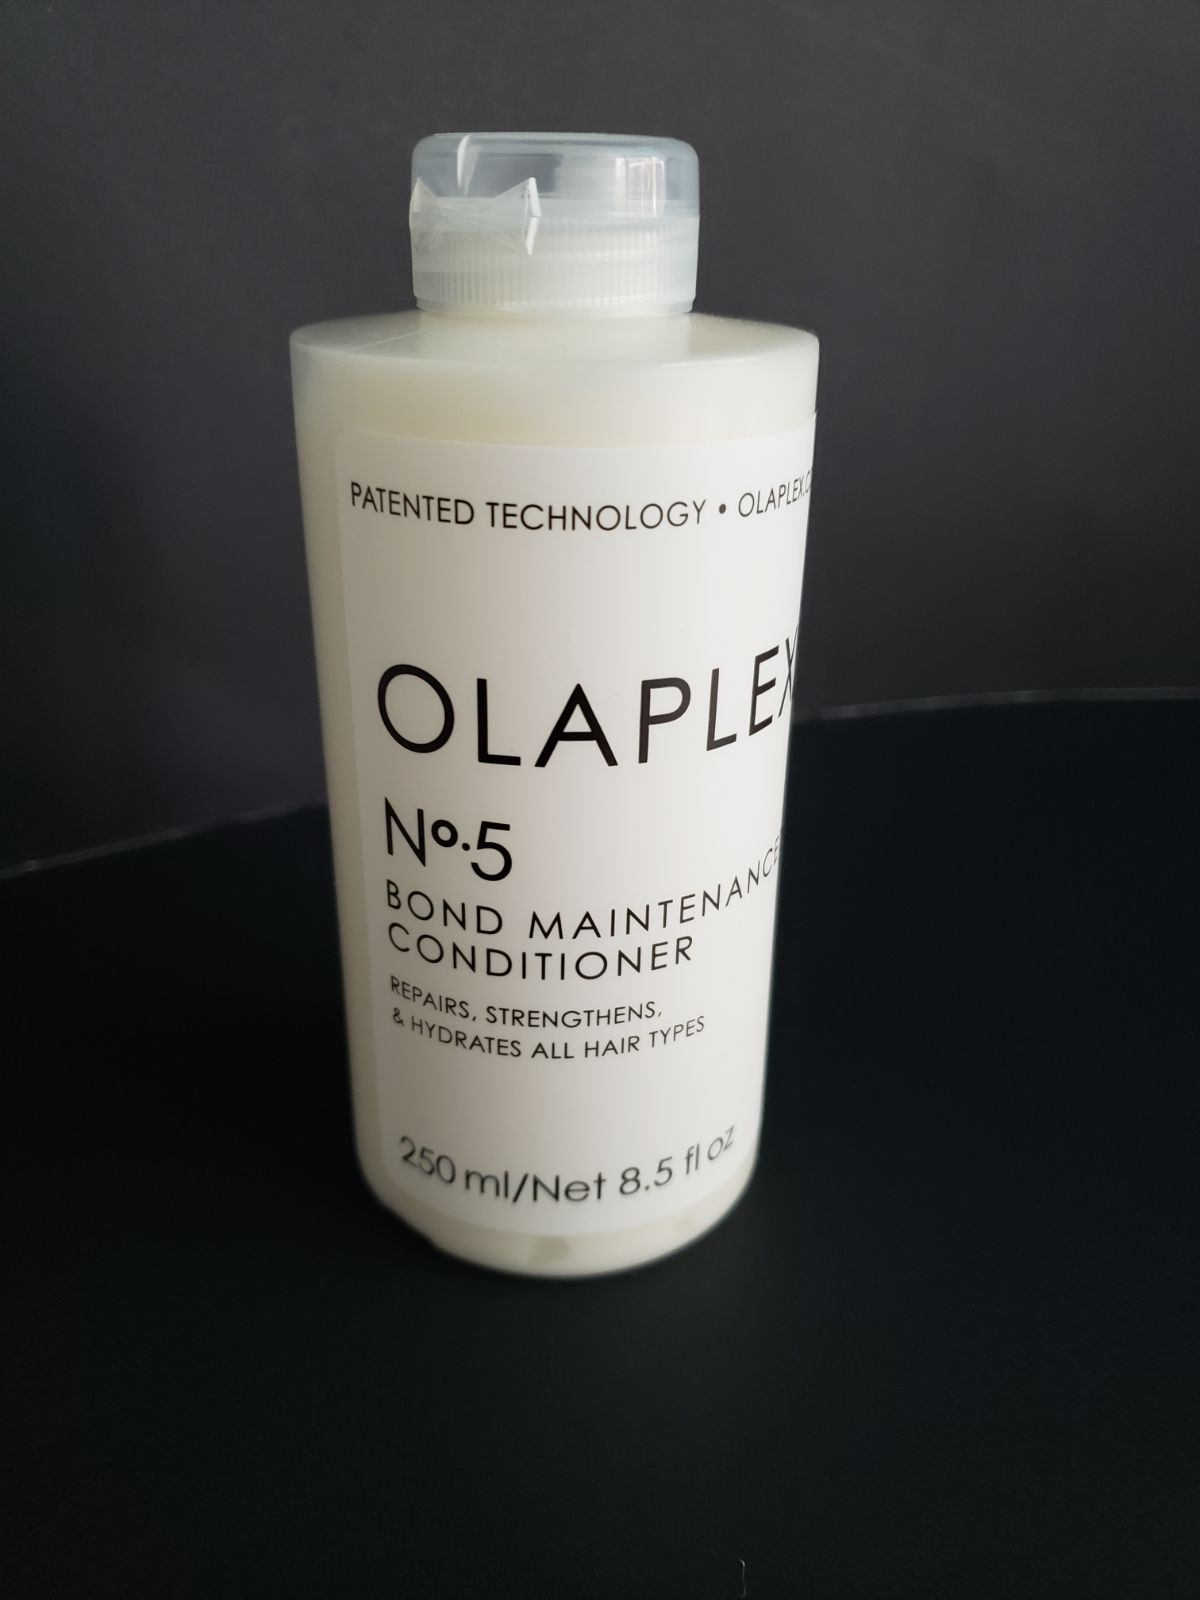 OLAPLEX BOND MAINTENANCE CONDITIONER 8.5